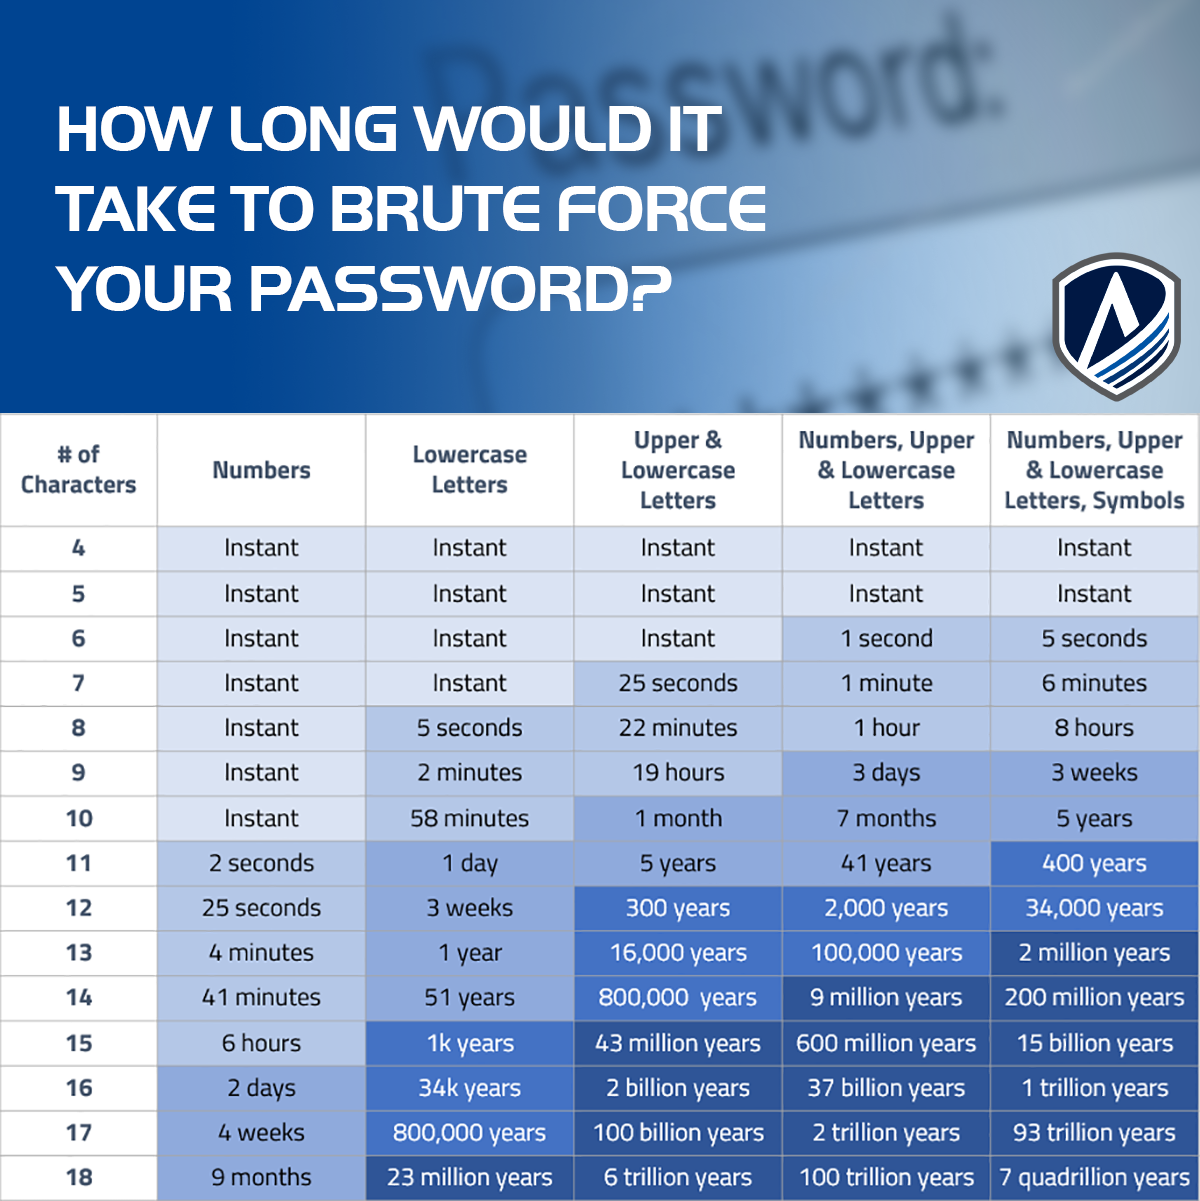 How Long Would it Take to Brute Force Your Password?